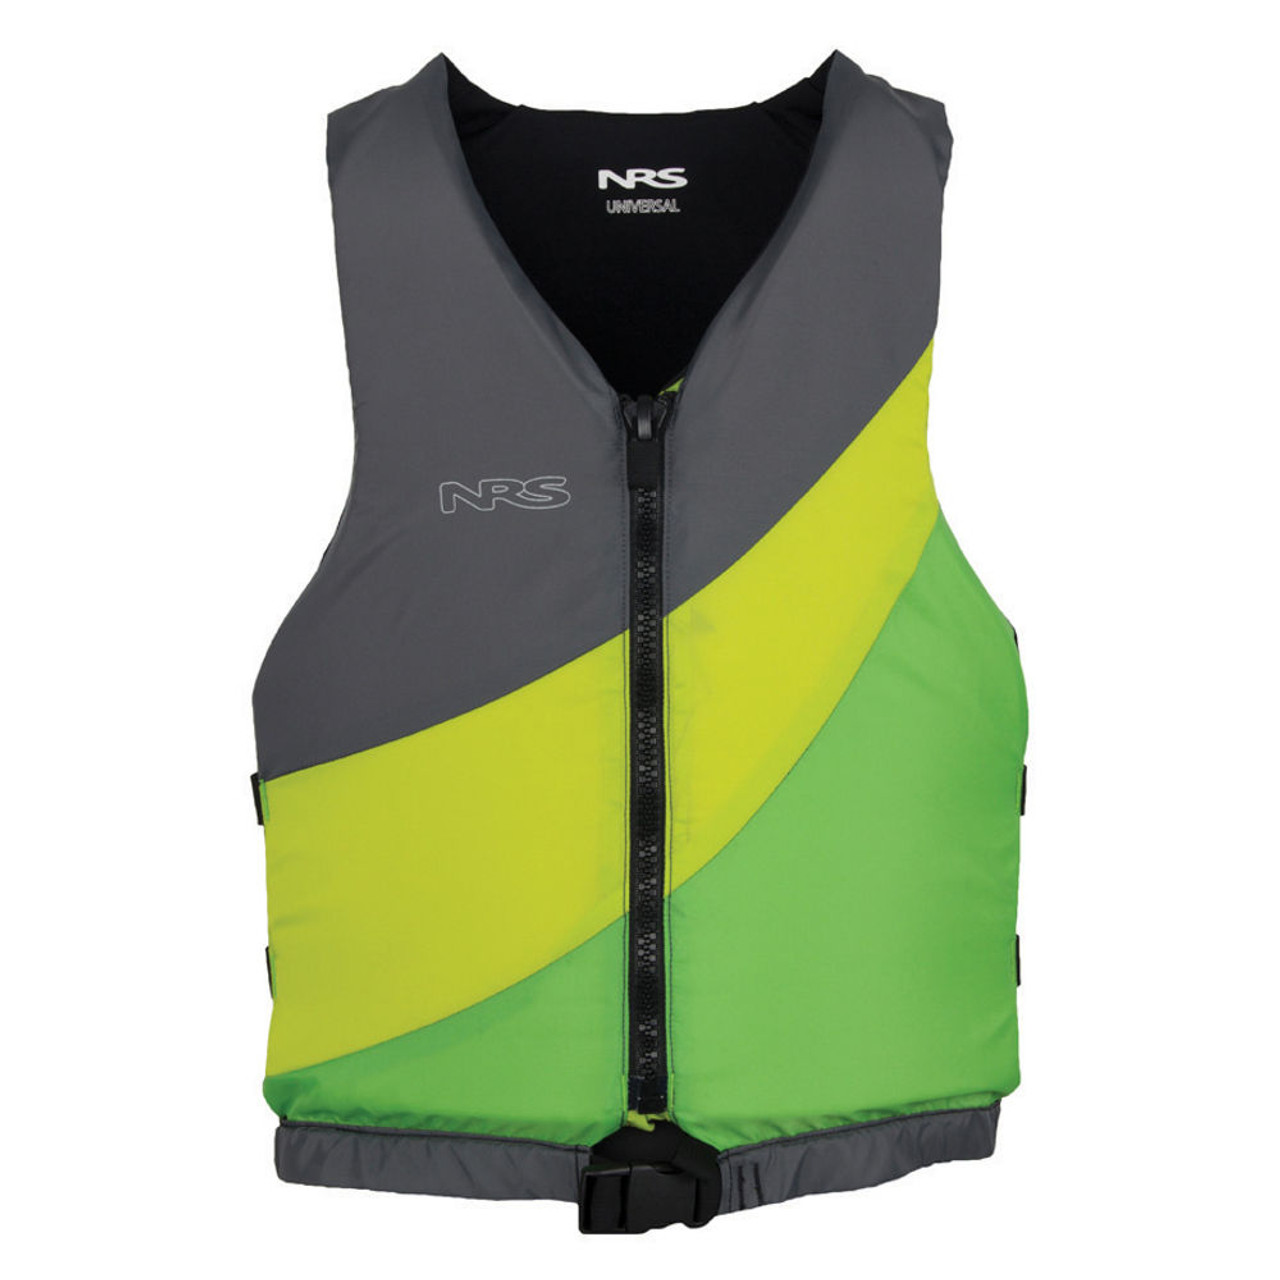 NRS Crew Child Kids PFD Paddle, SUP, Kayak, Rafting Life Jacket